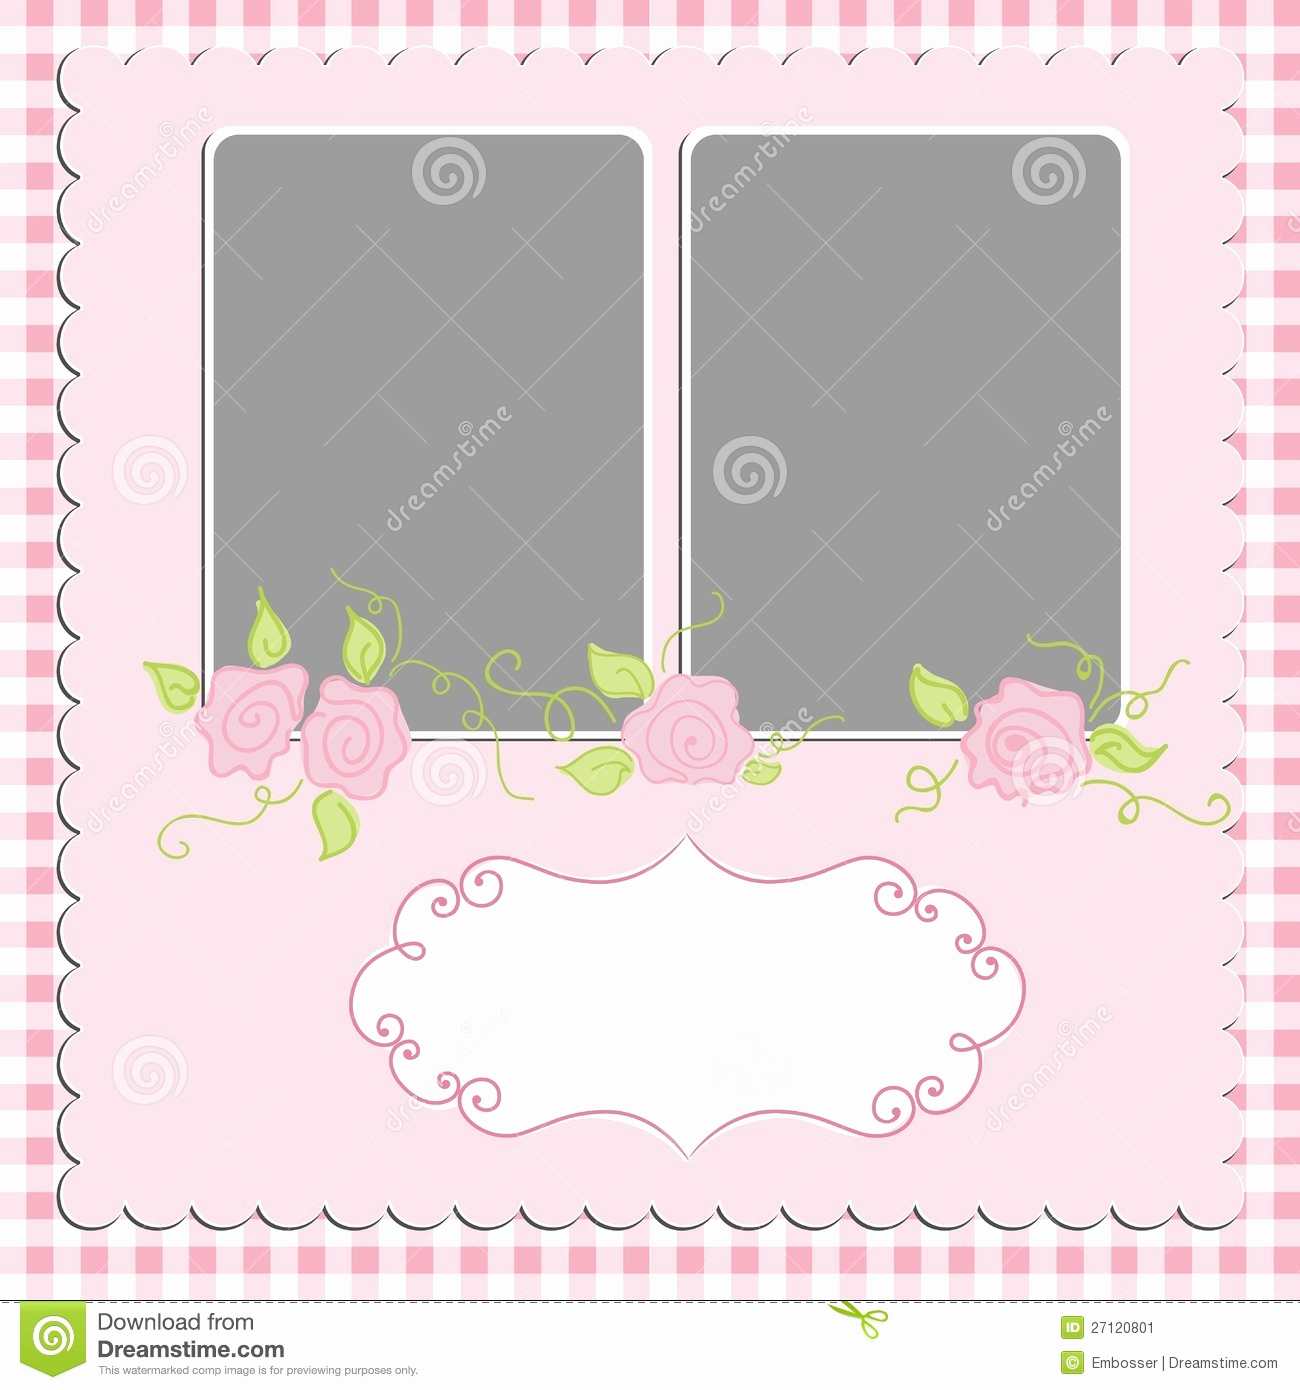 Blank Greeting Card Template Elegant Blank Template for Greetings Card Stock Image Image